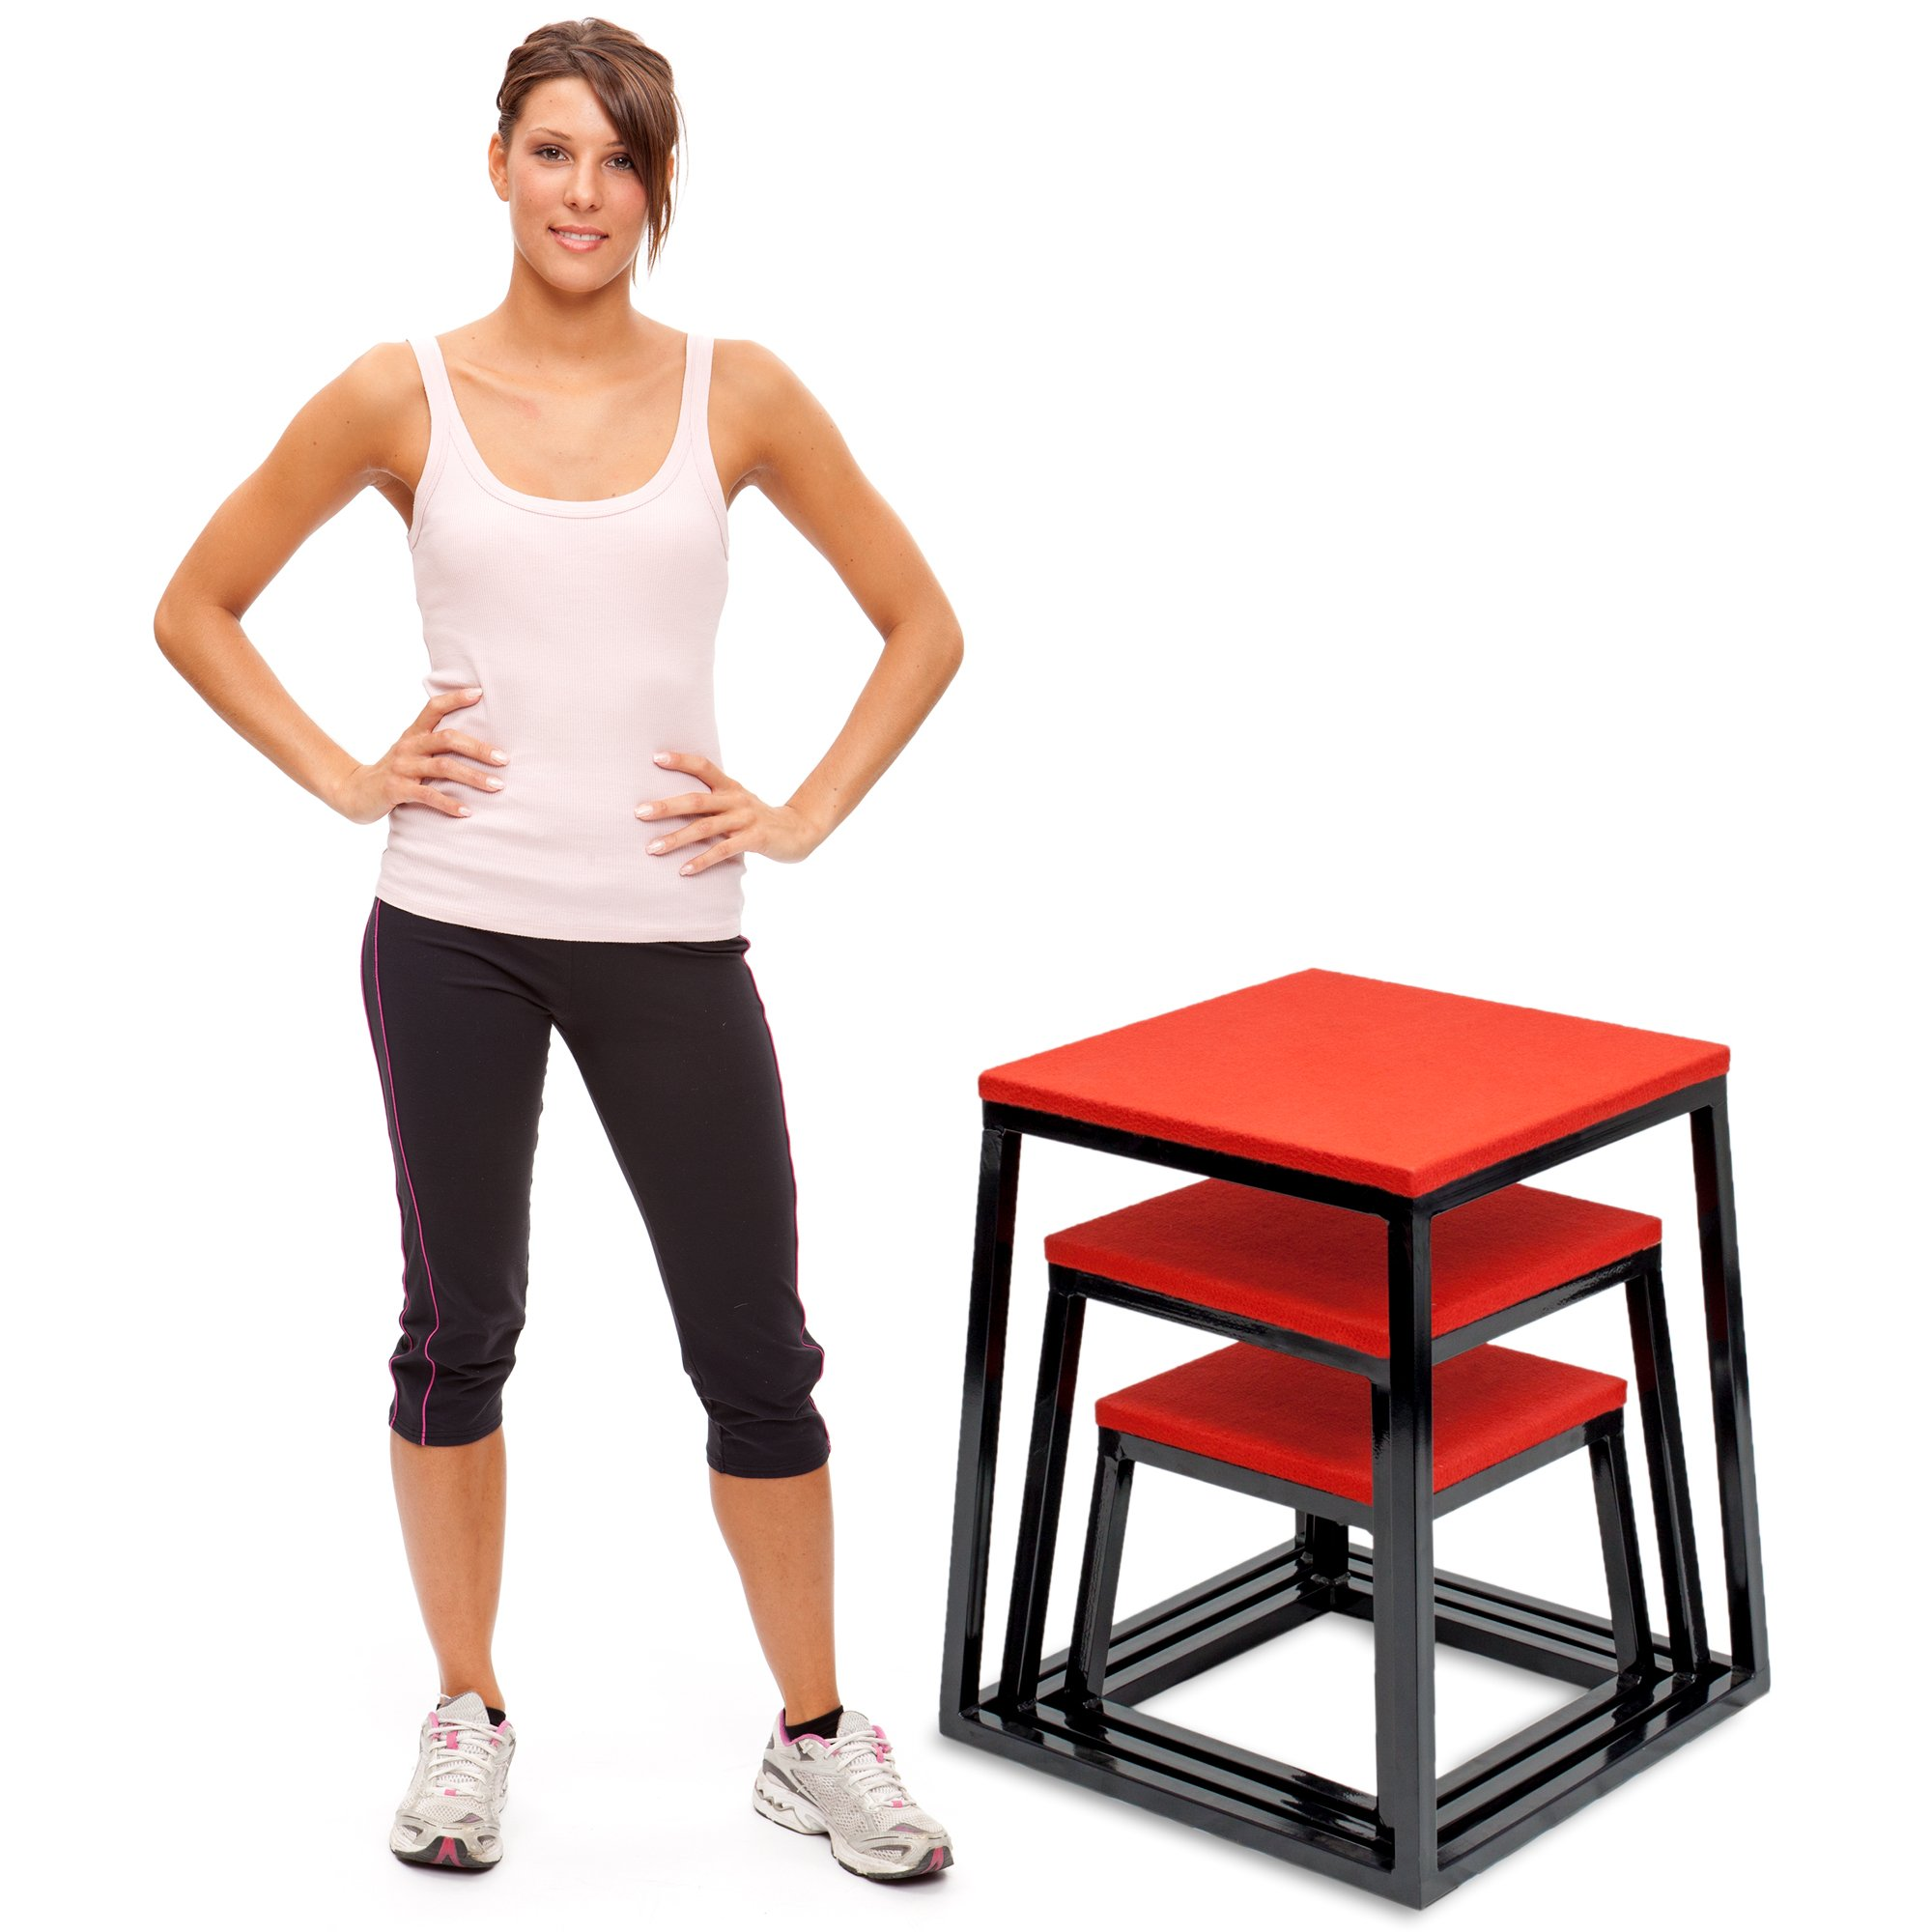 Set of 3 Plyometric Jump Boxes – Step Platform, Fitness Training & Conditioning Equipment for Increasing Vertical, Speed, & Stamina (12''/18''/24'') by Crown Sporting Goods by Crown Sporting Goods (Image #2)